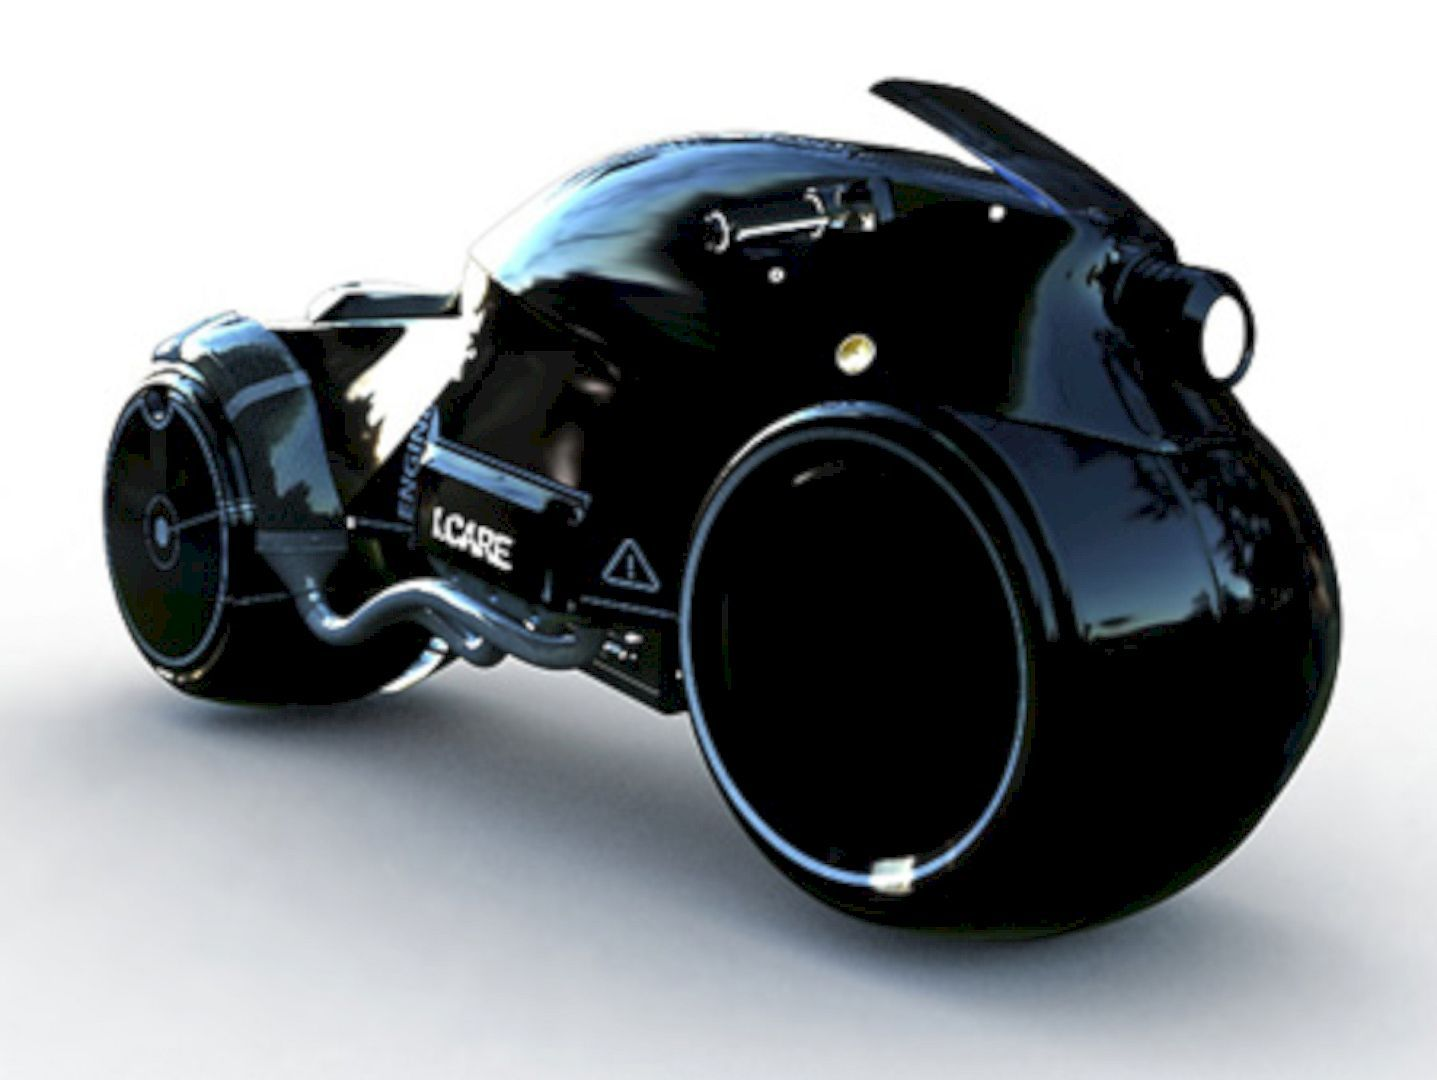 Benefits Of Motorcycle Led Lights With Images Futuristic Motorcycle Concept Motorcycles